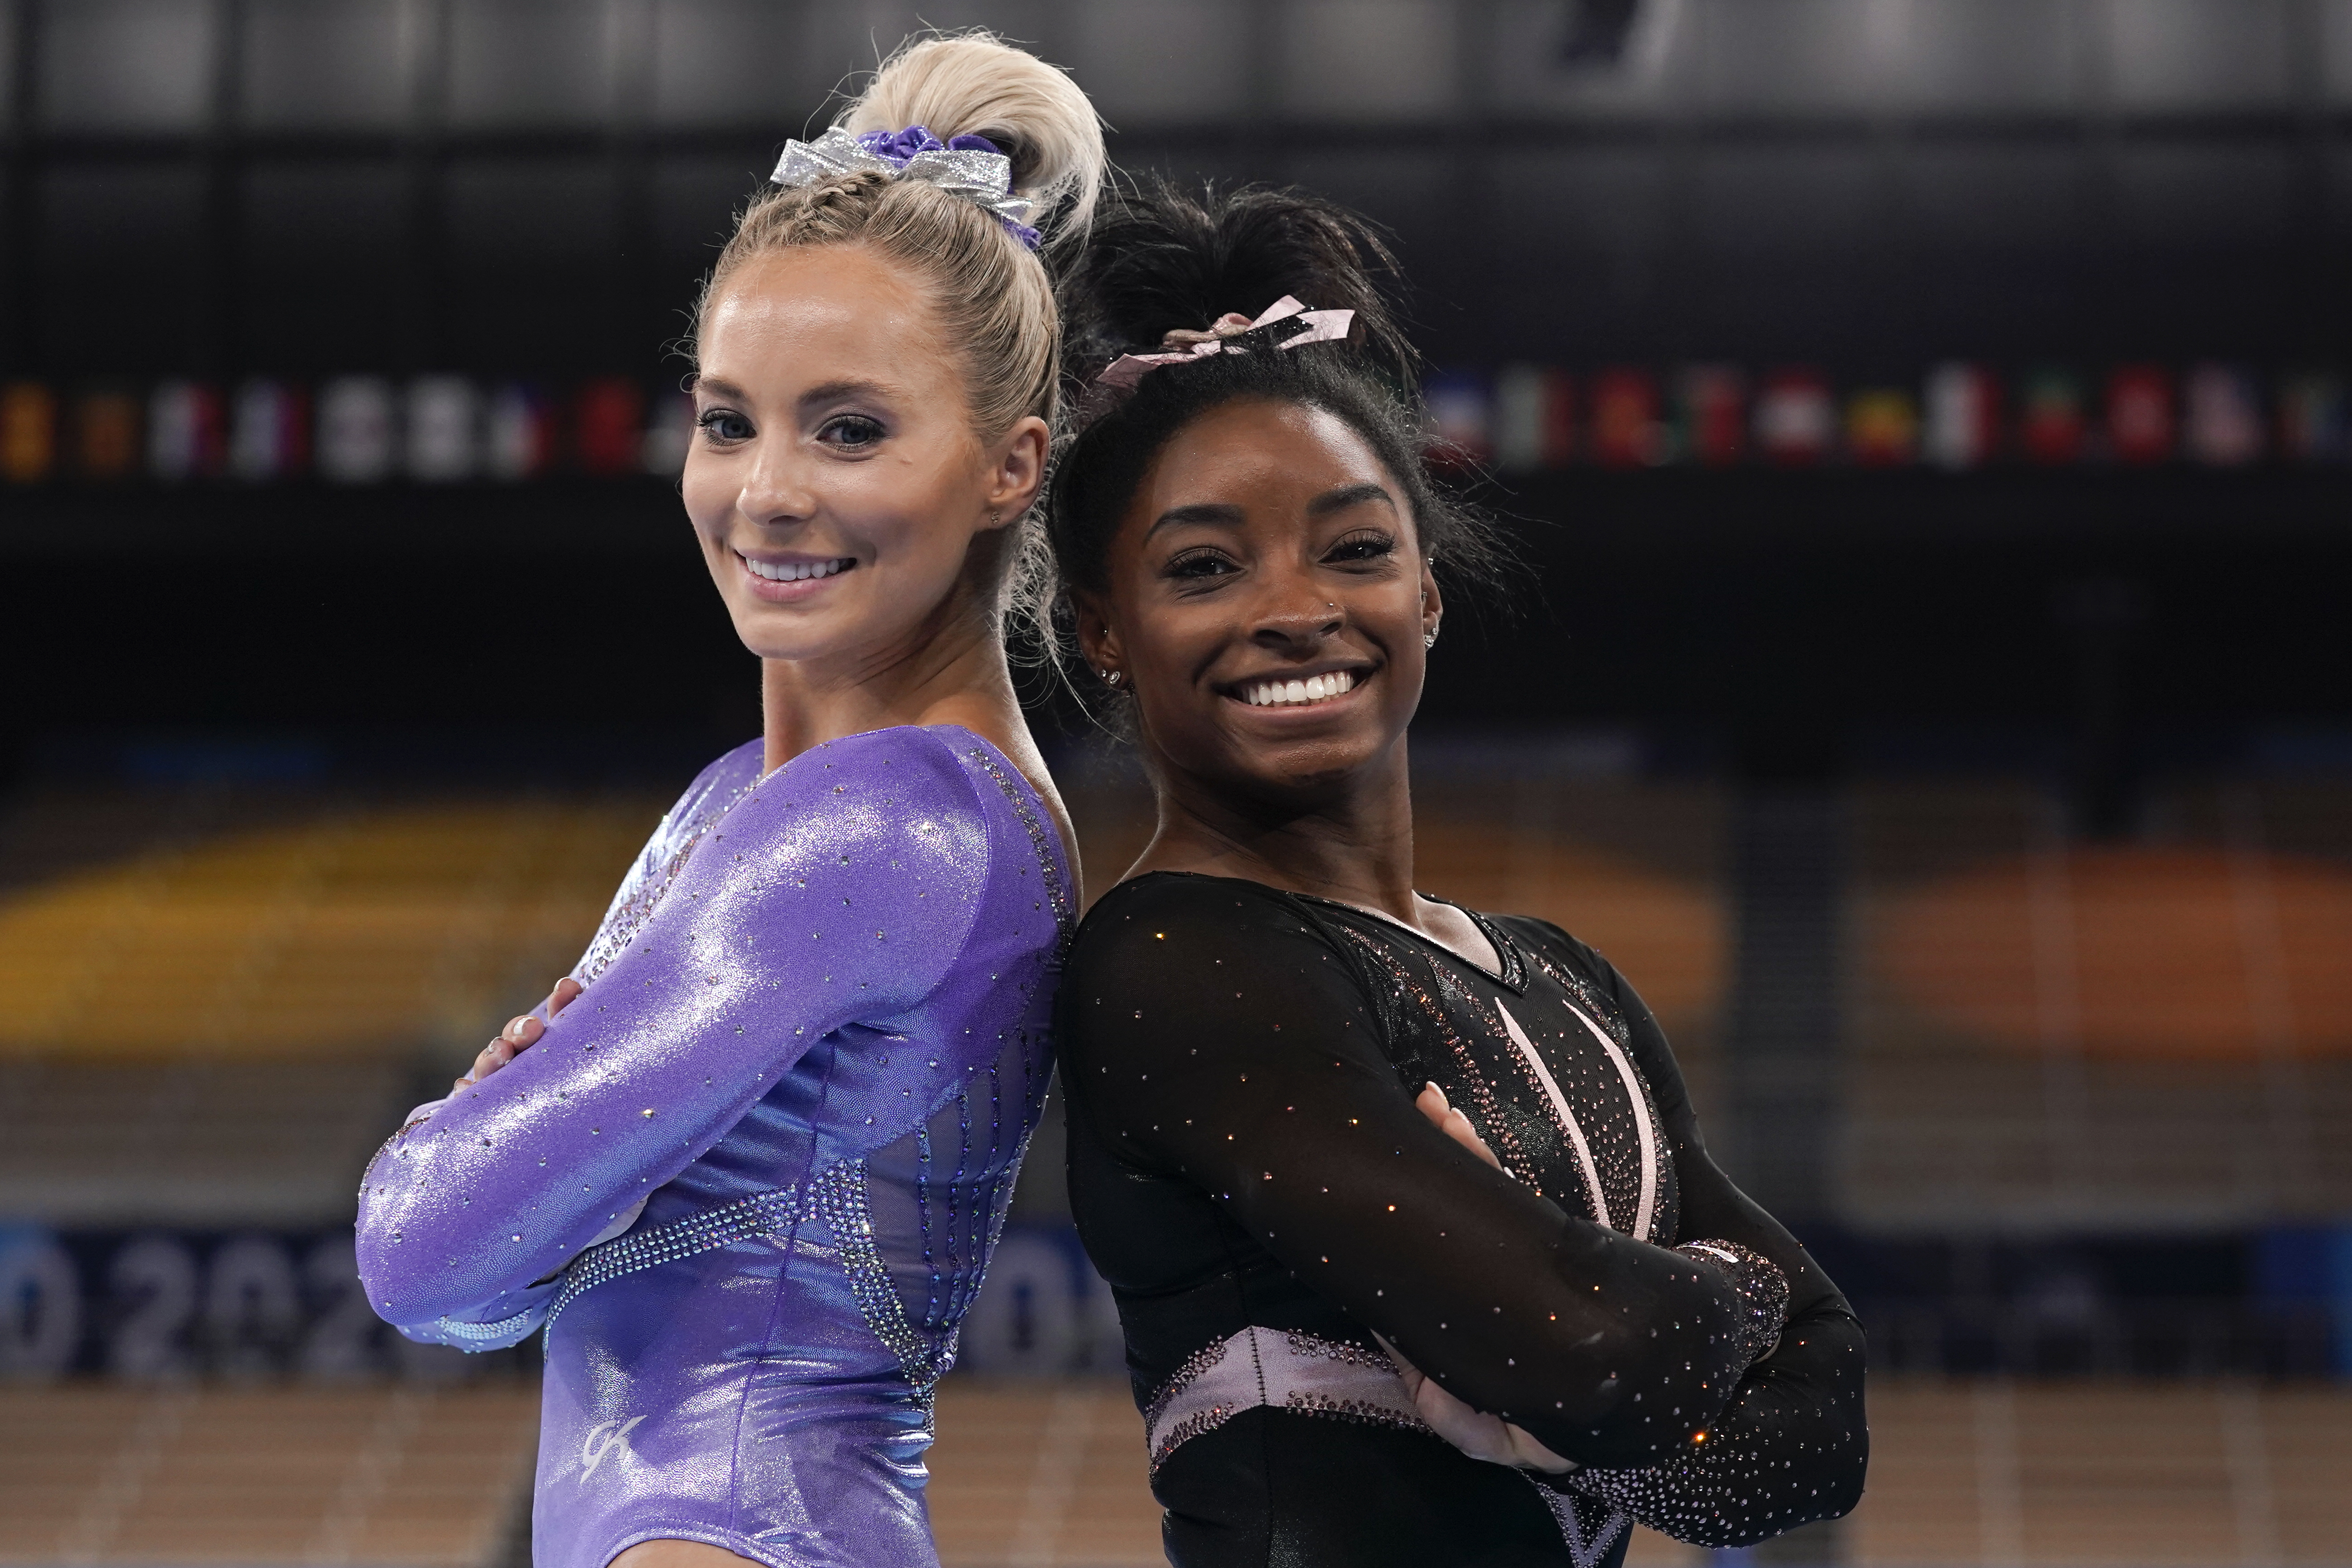 Simone Biles, of the United States, right, poses for pictures with teammate MyKayla Skinner